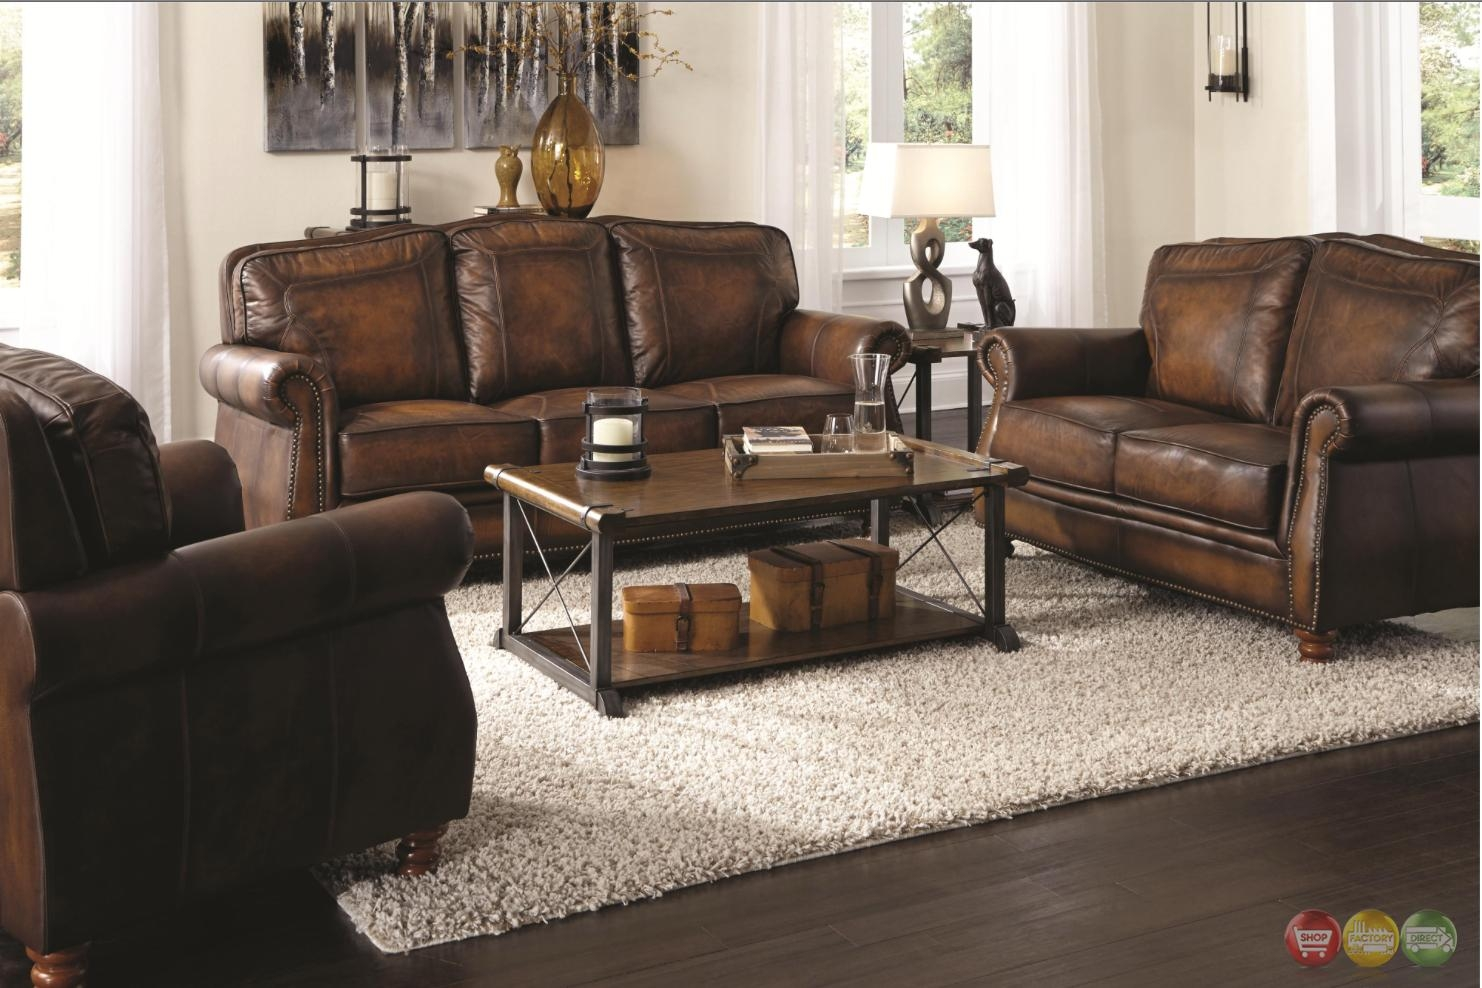 Featured Image of Brown Leather Sofas With Nailhead Trim